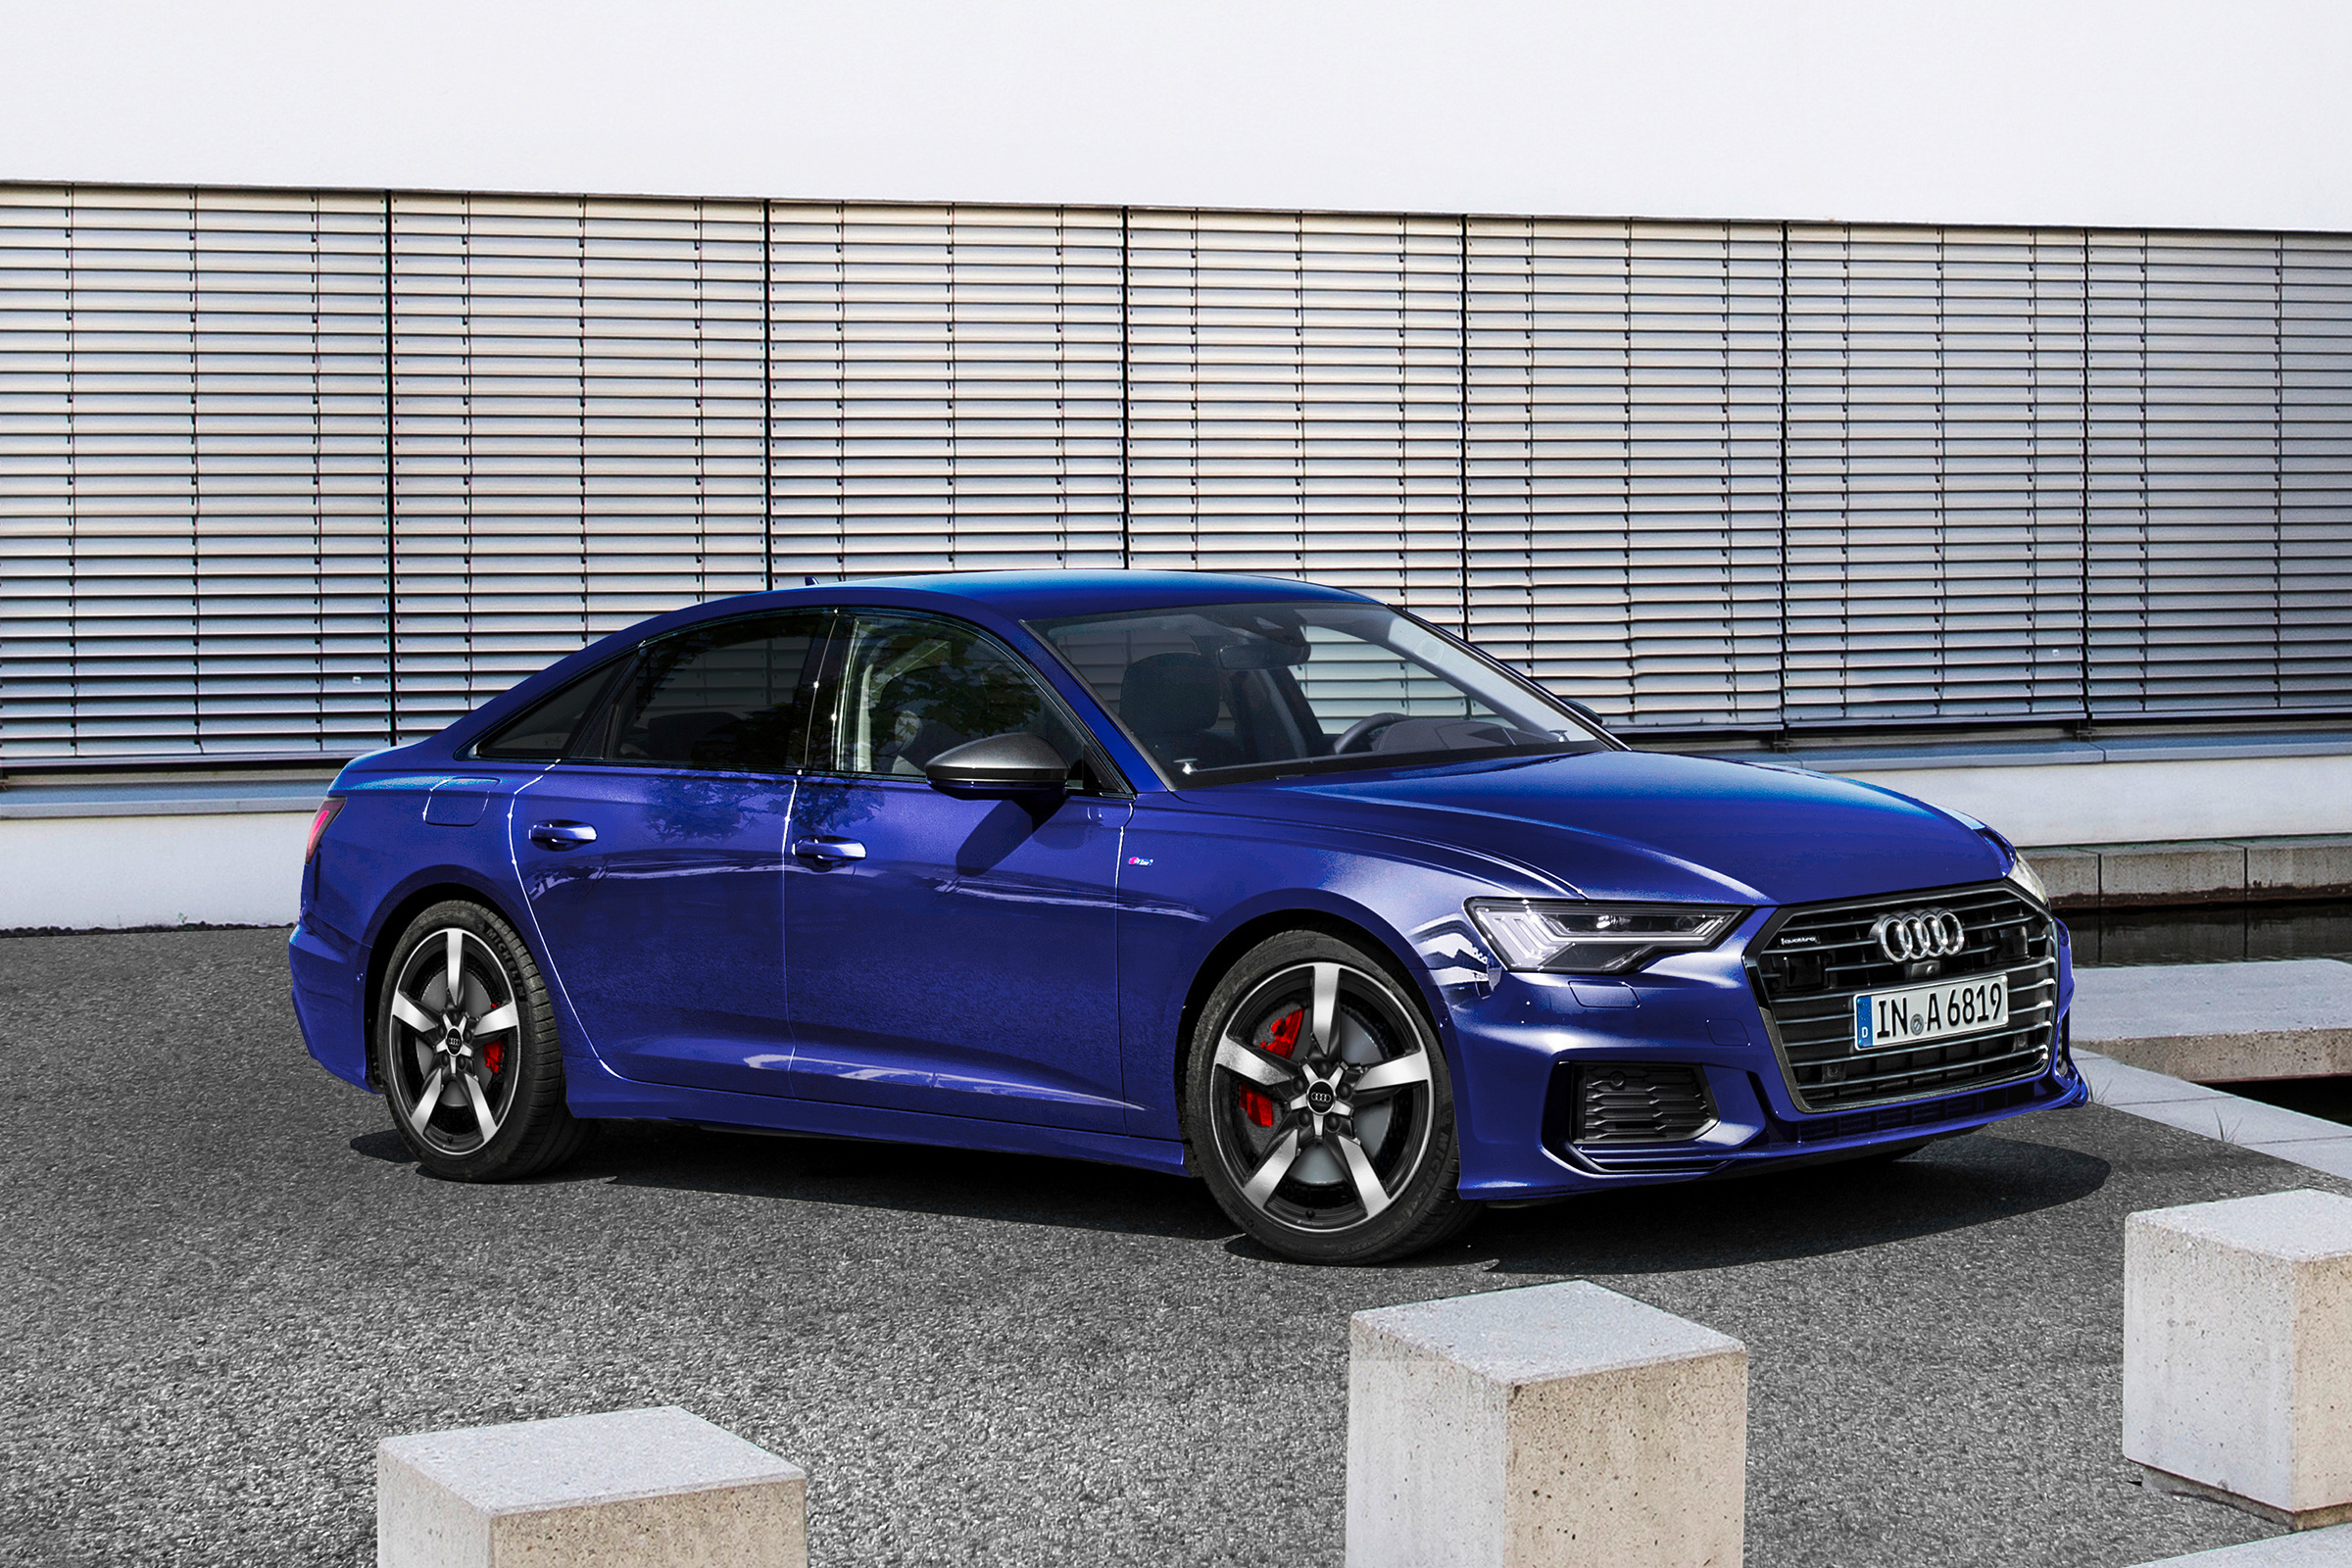 New 2019 Audi A6 55 Tfsi E Quattro Launched Auto Express